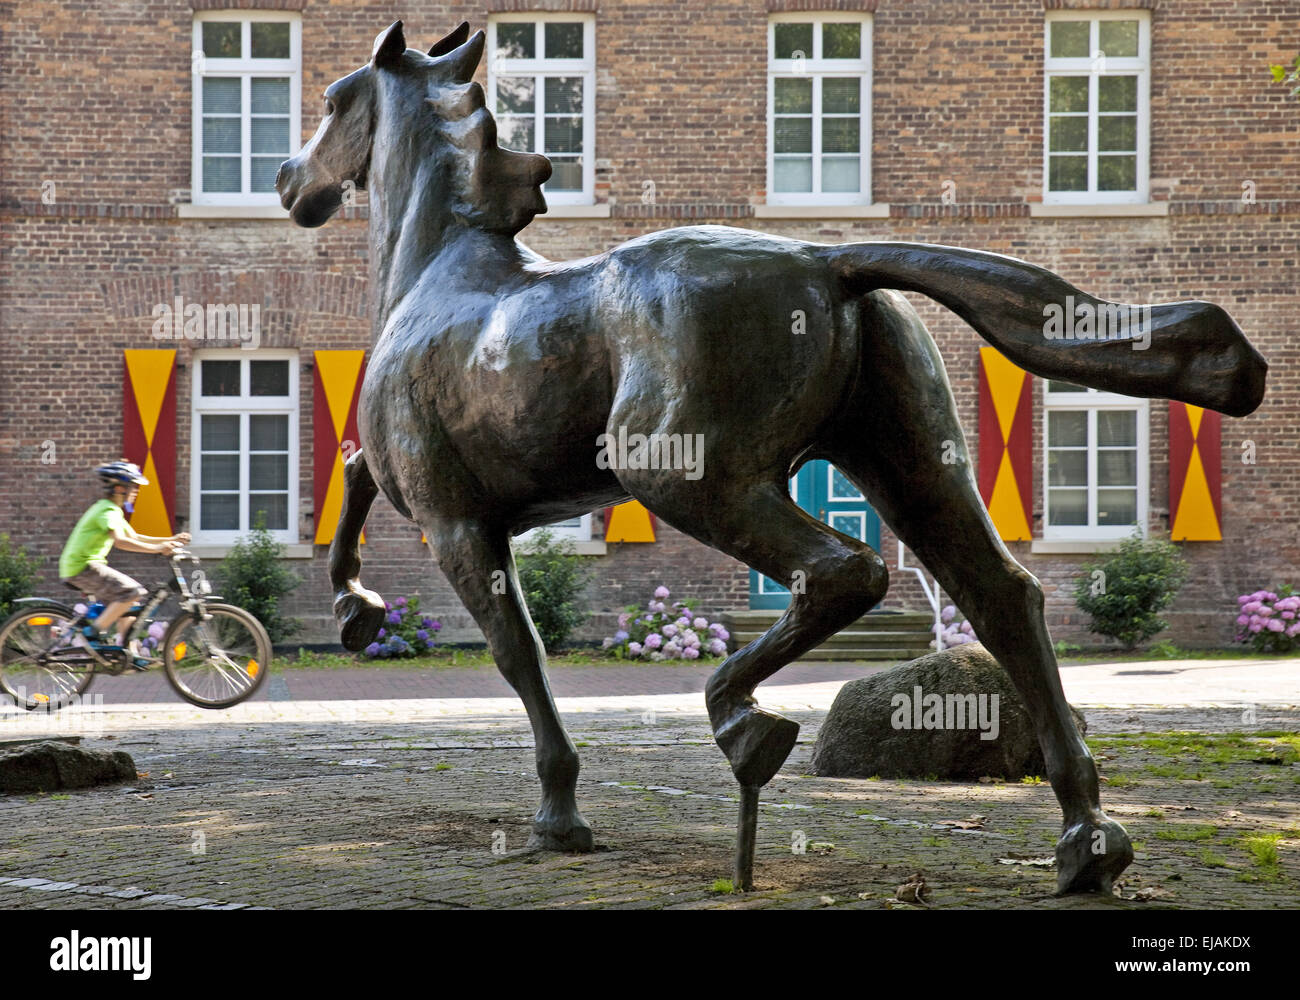 Horse sculpture, Drensteinfurt, Germany - Stock Image